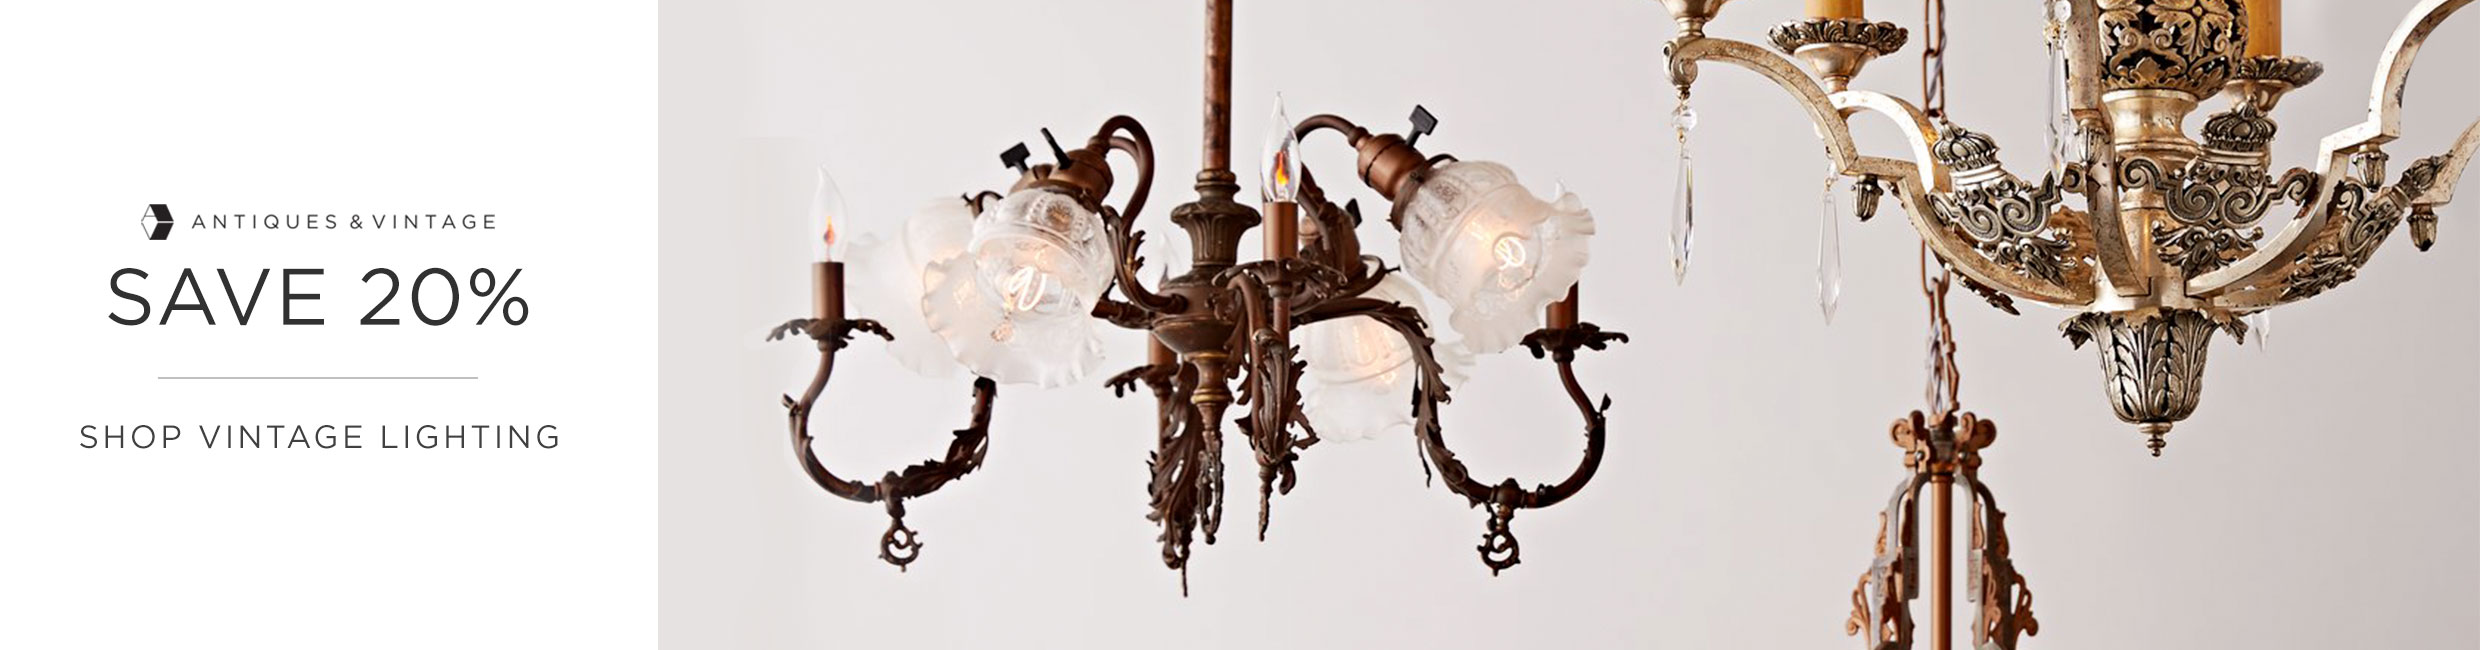 Antiques & Vintage Sale Lighting